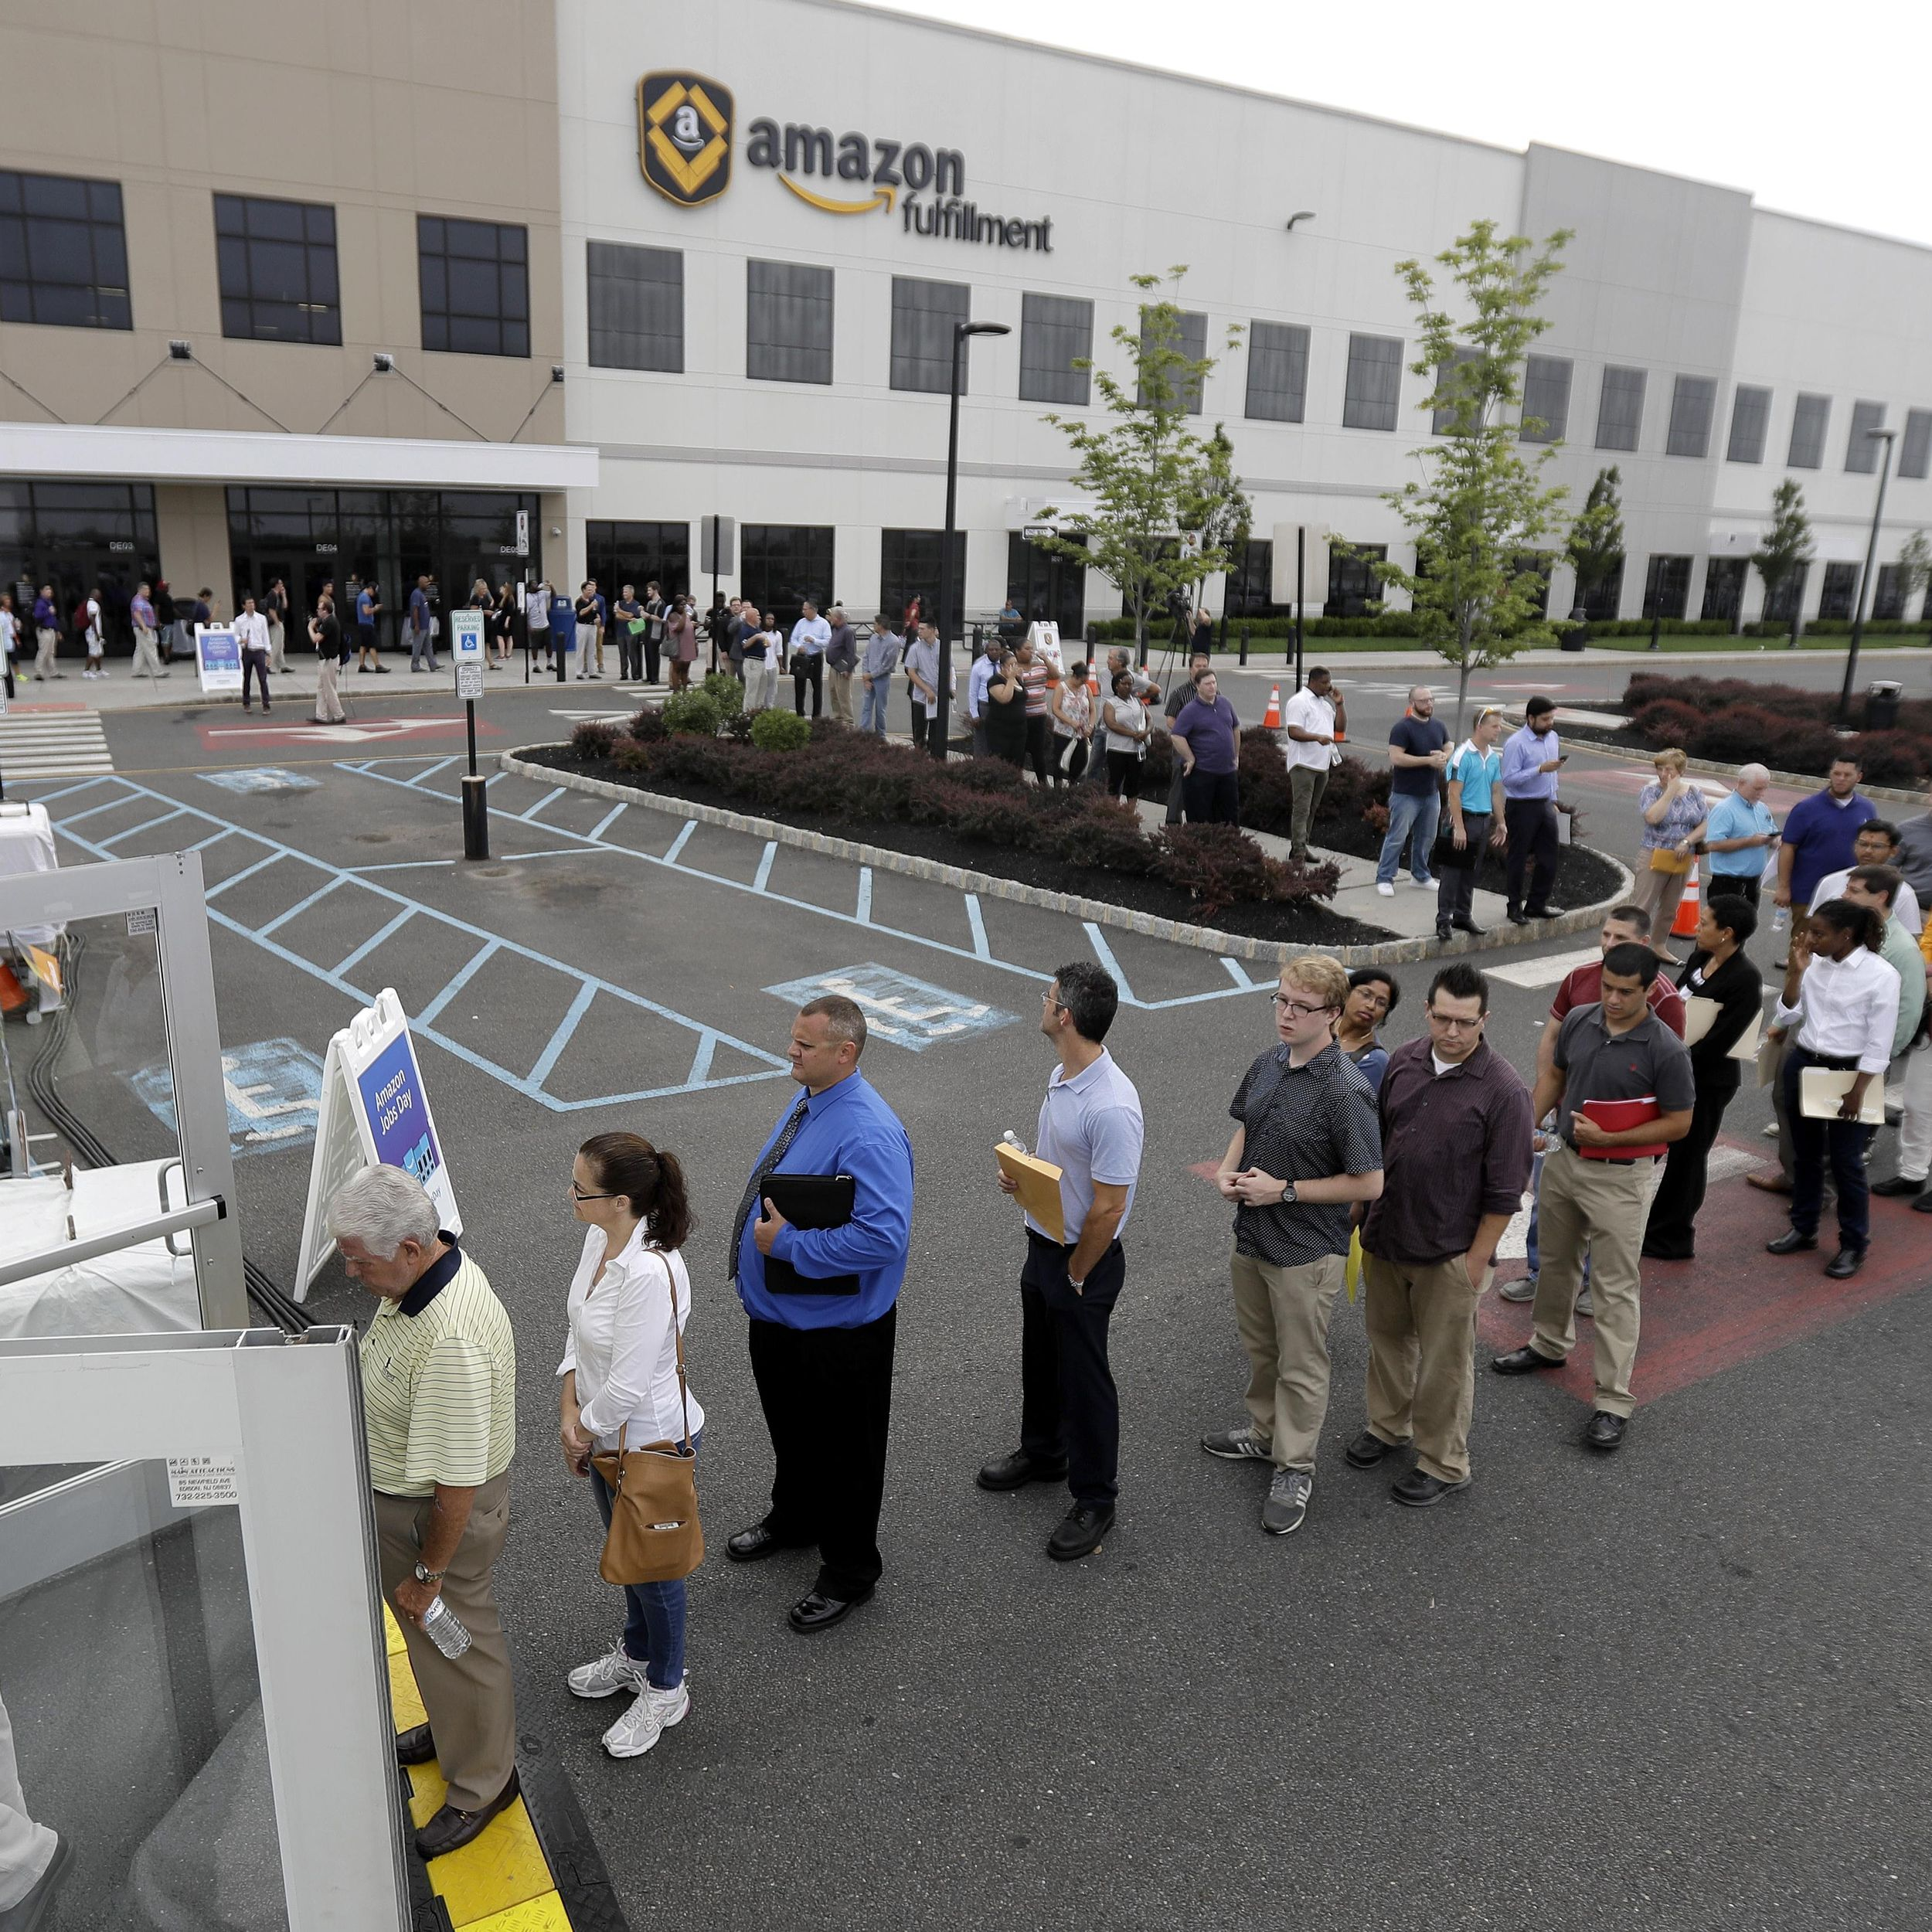 Amazon, in sign of growth, holds job fair for US warehouses  The